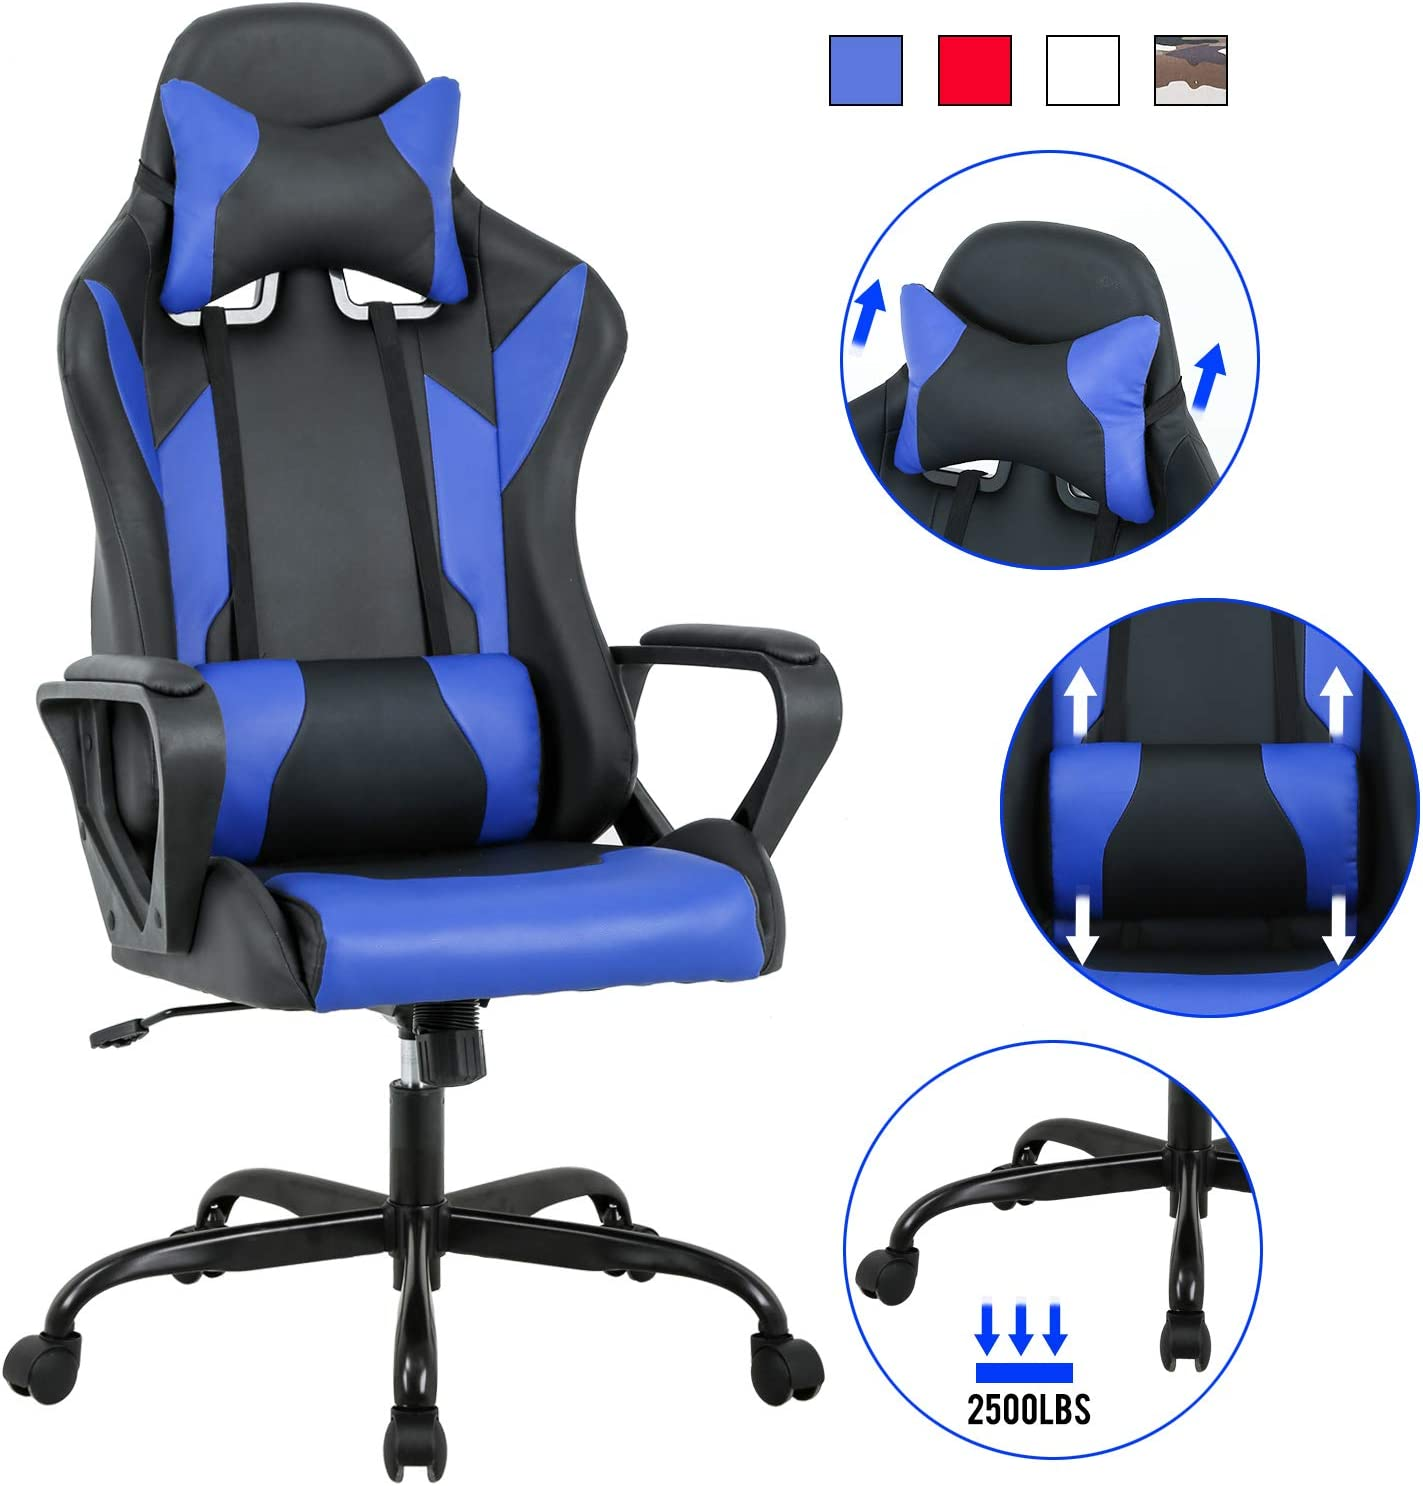 Amazon Com Computer Gaming Chair Pc Ergonomic Office Chair Home Executive Desk Chair Adjustable High Back Pu Leather Racing Chair Rolling Swivel Modern Task Chair With Lumbar Support Headrest Armrest Blue Kitchen Dining